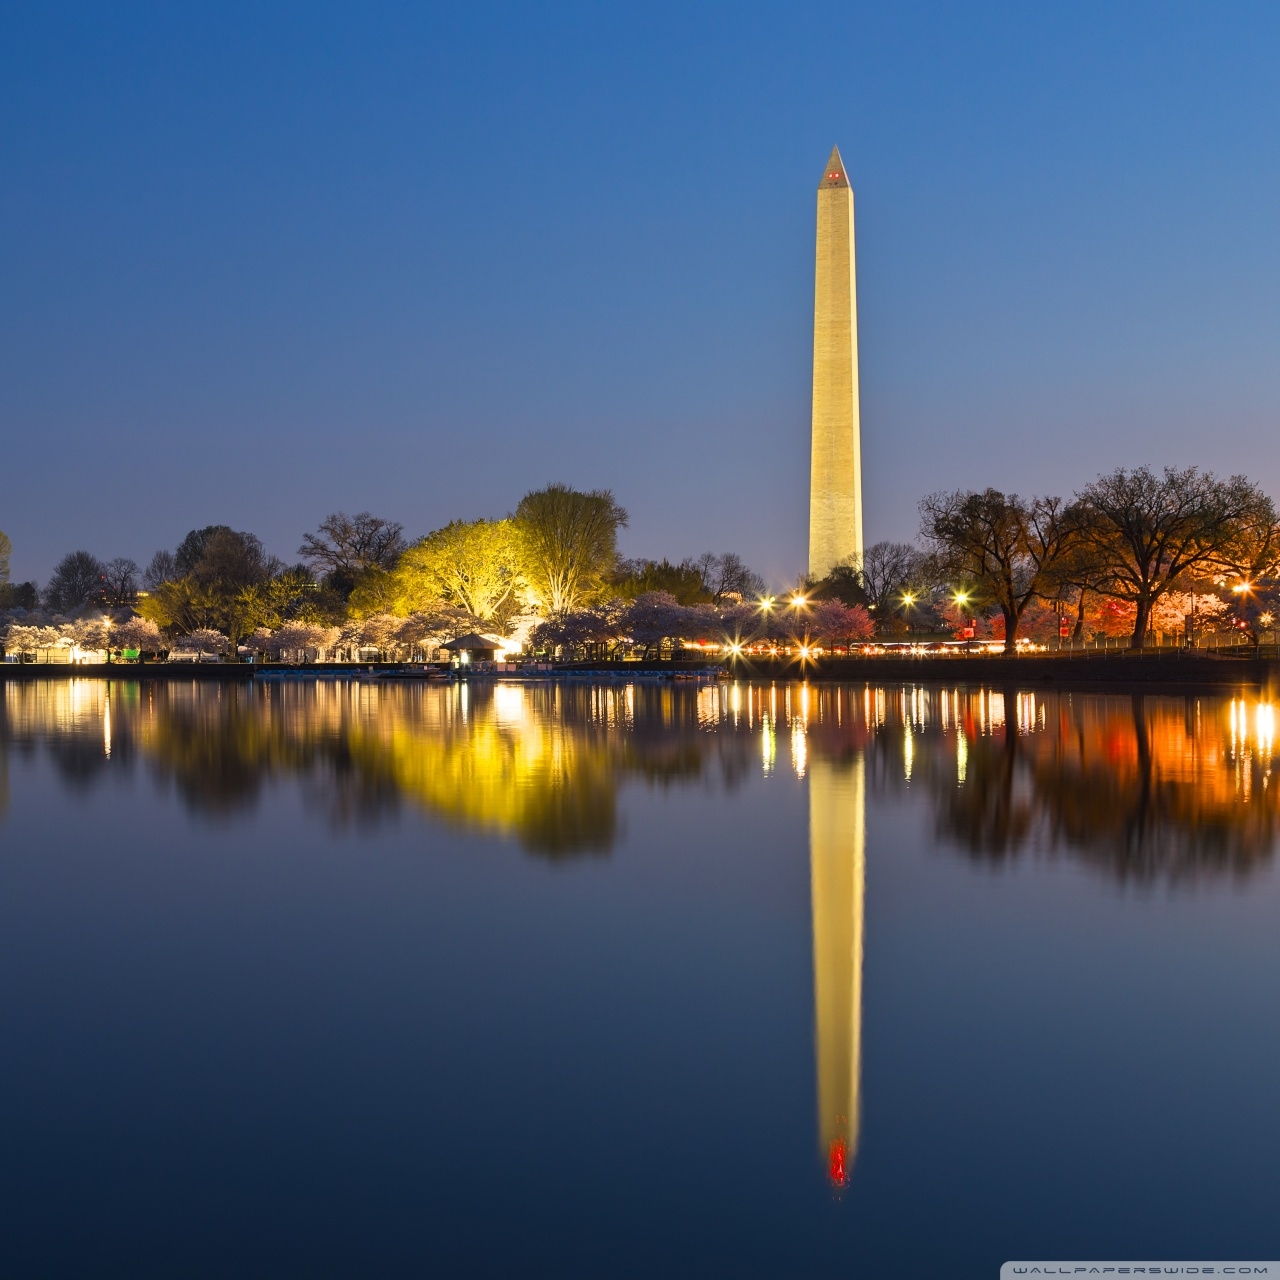 washington dc memorials at night ❤ uhd desktop wallpaper for